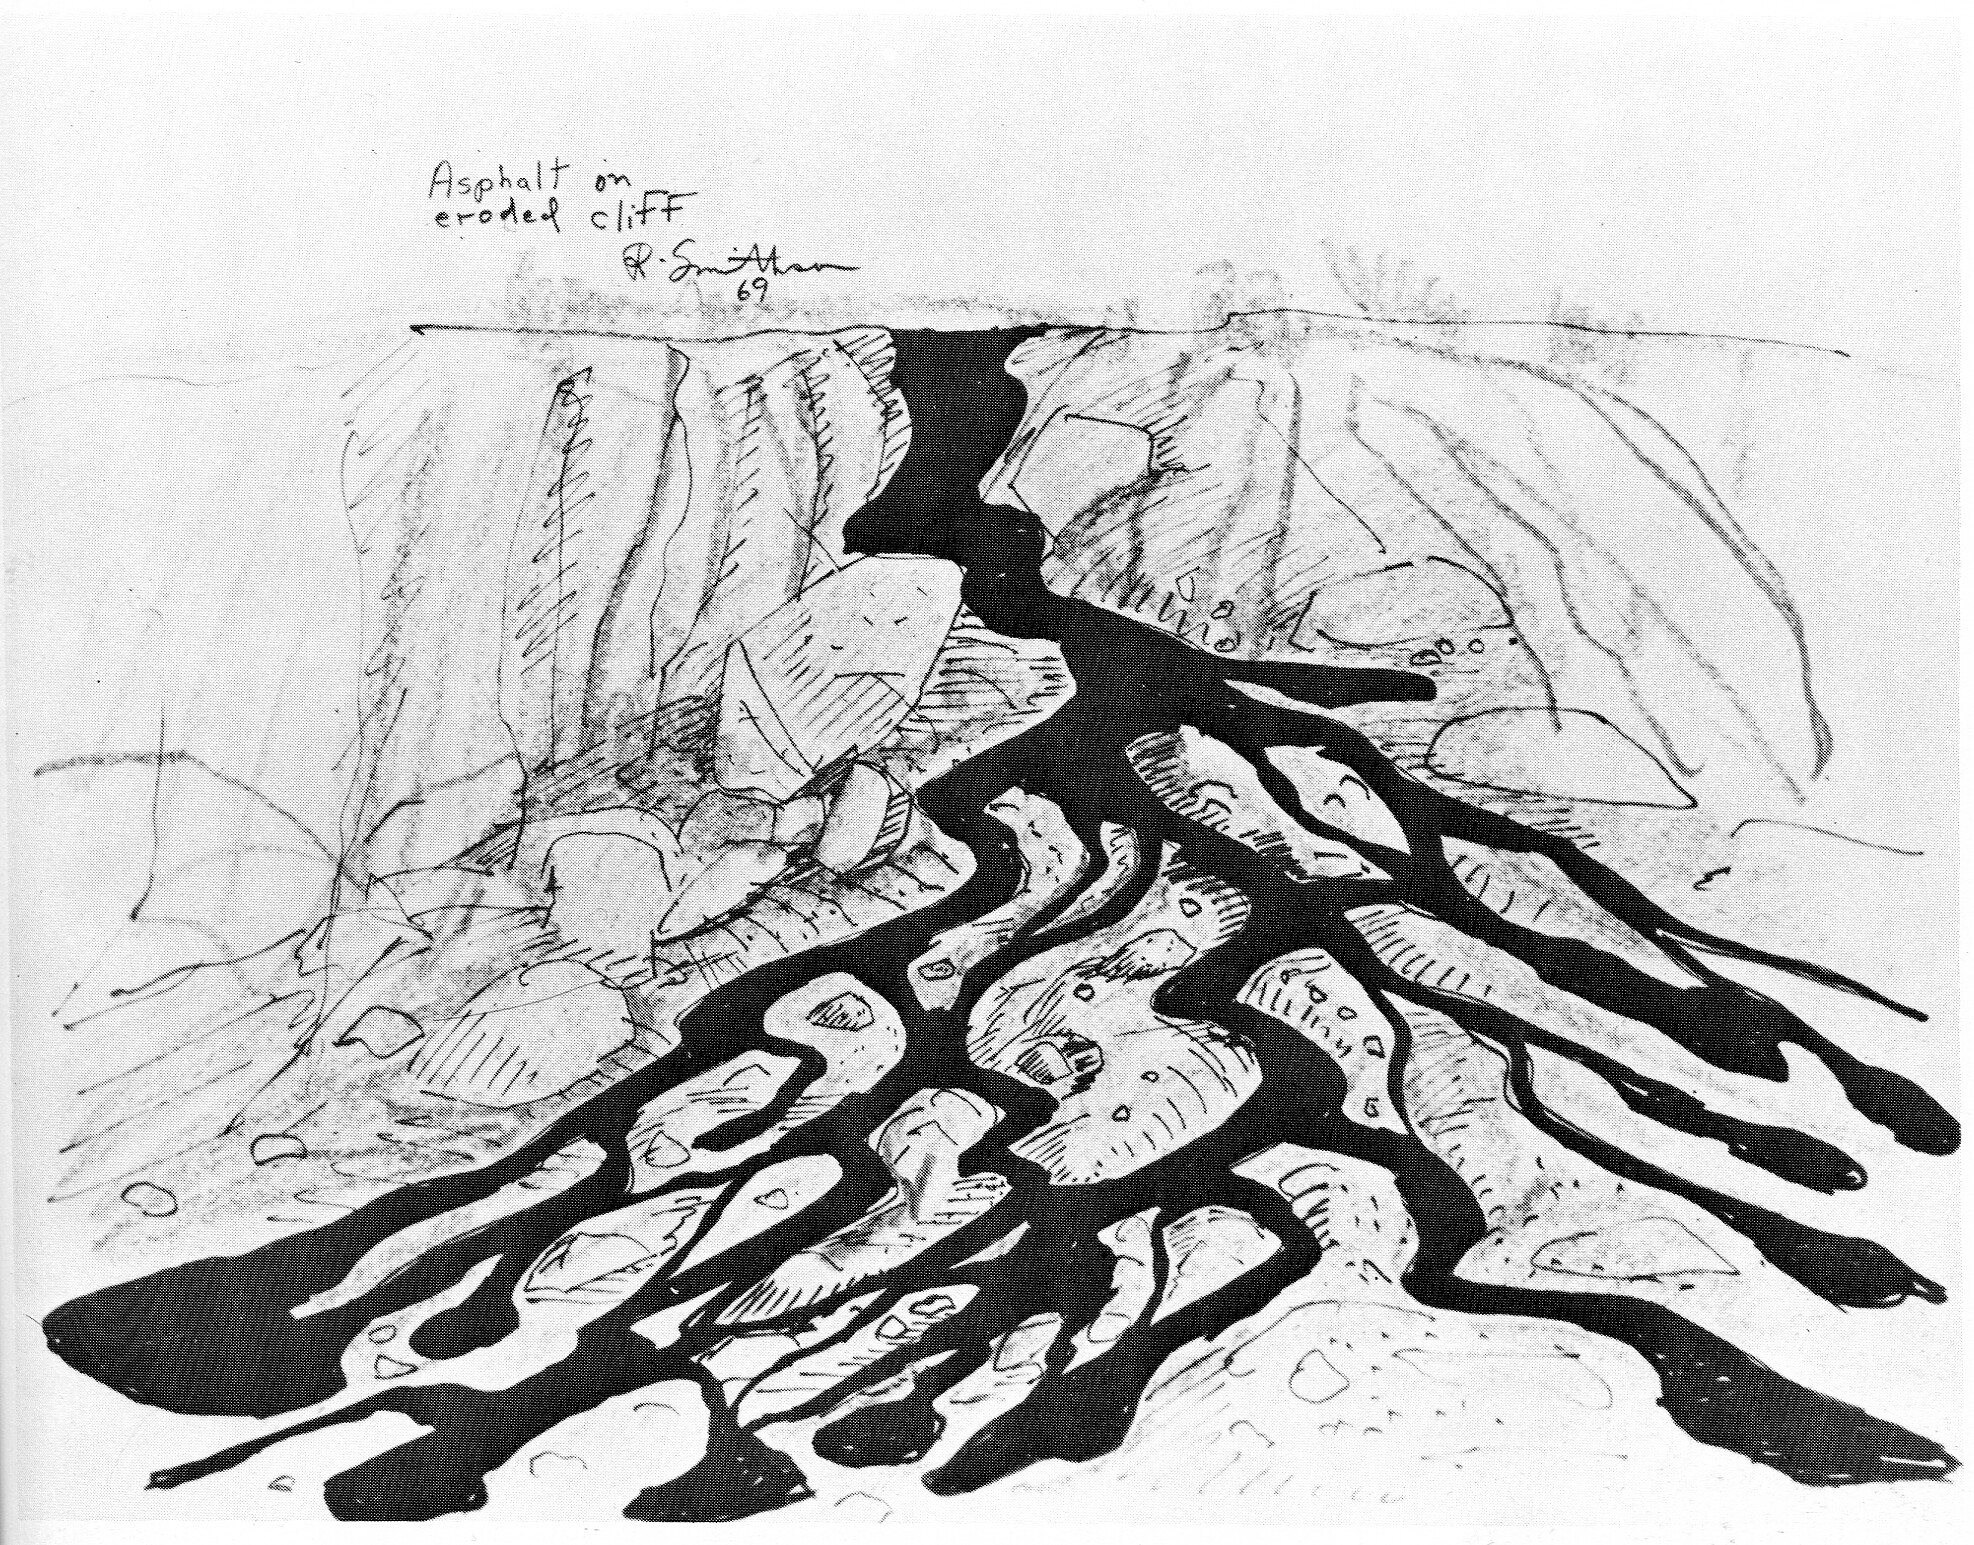 Collages Robert Smithson Unearthed Drawings Writings